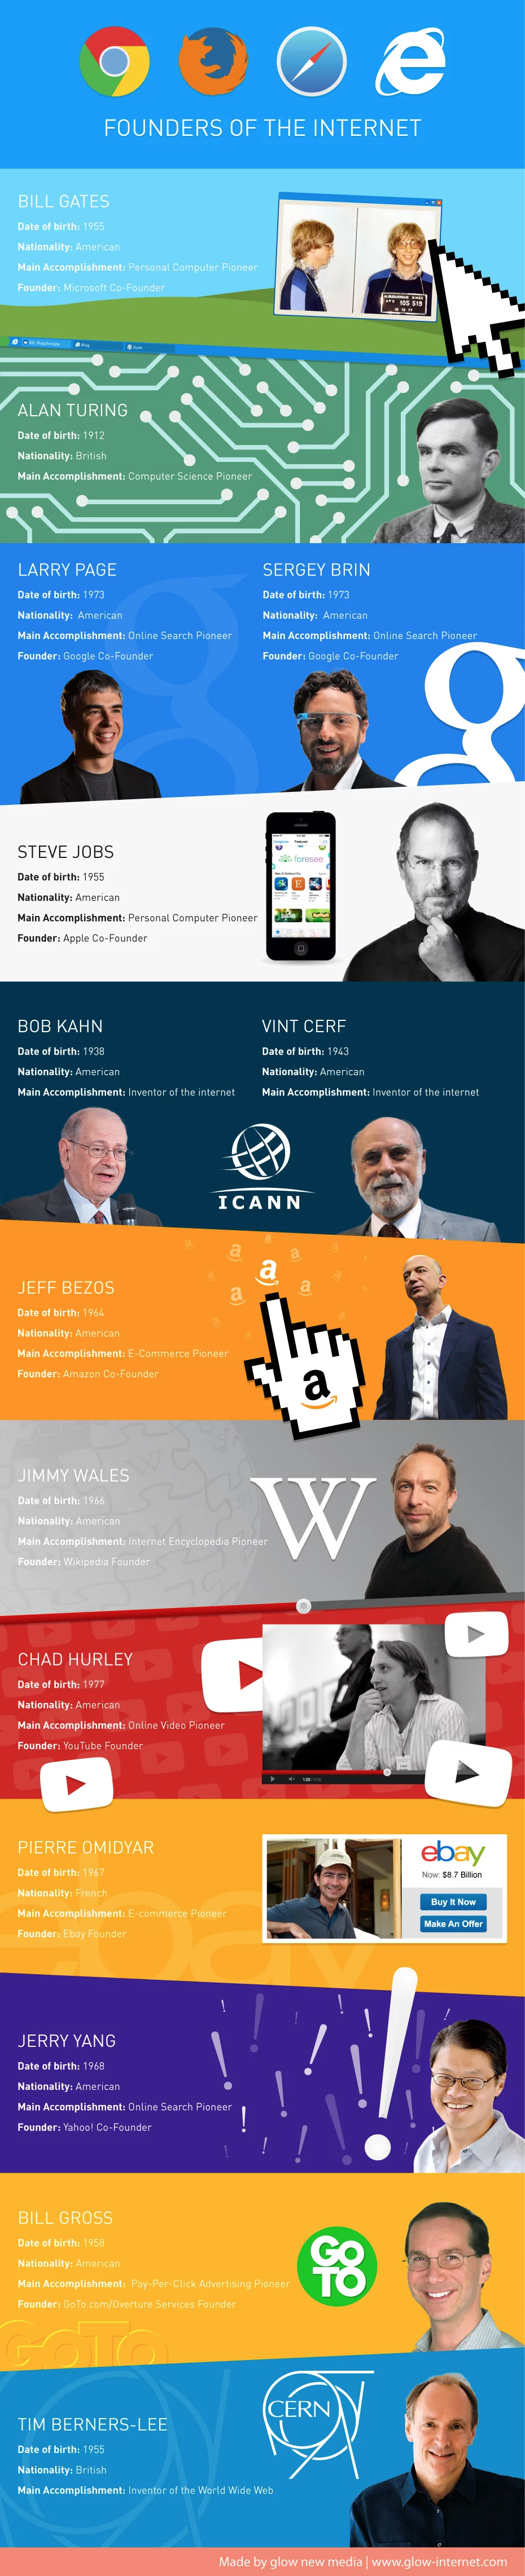 These People Founded The Internet! - Infographic